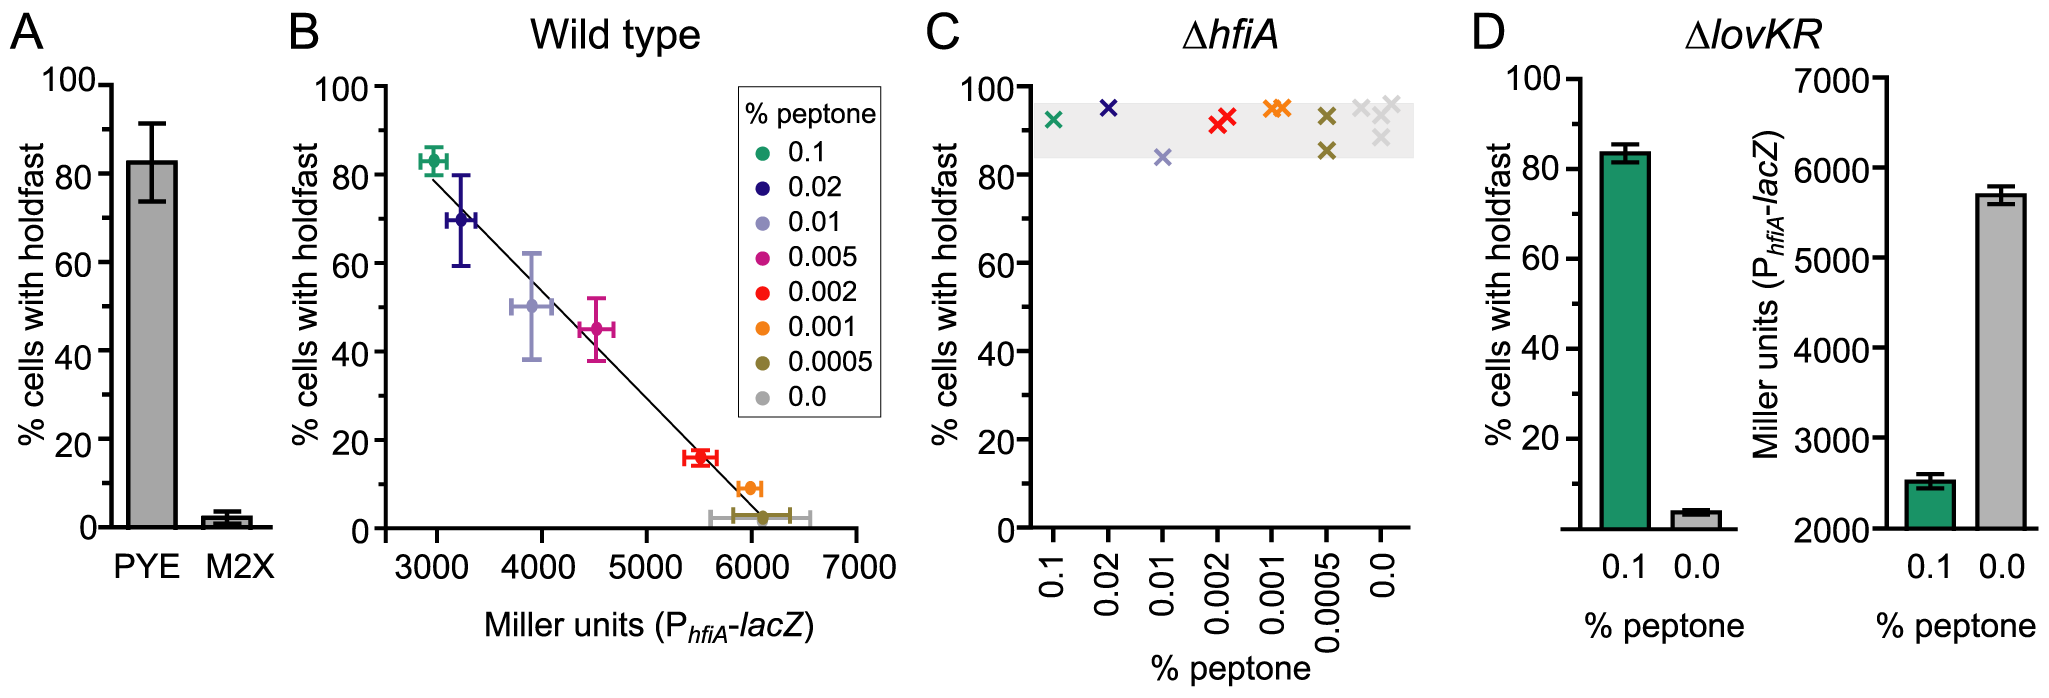 Nutrient environment affects <i>hfiA</i> transcription and the probability of holdfast development.